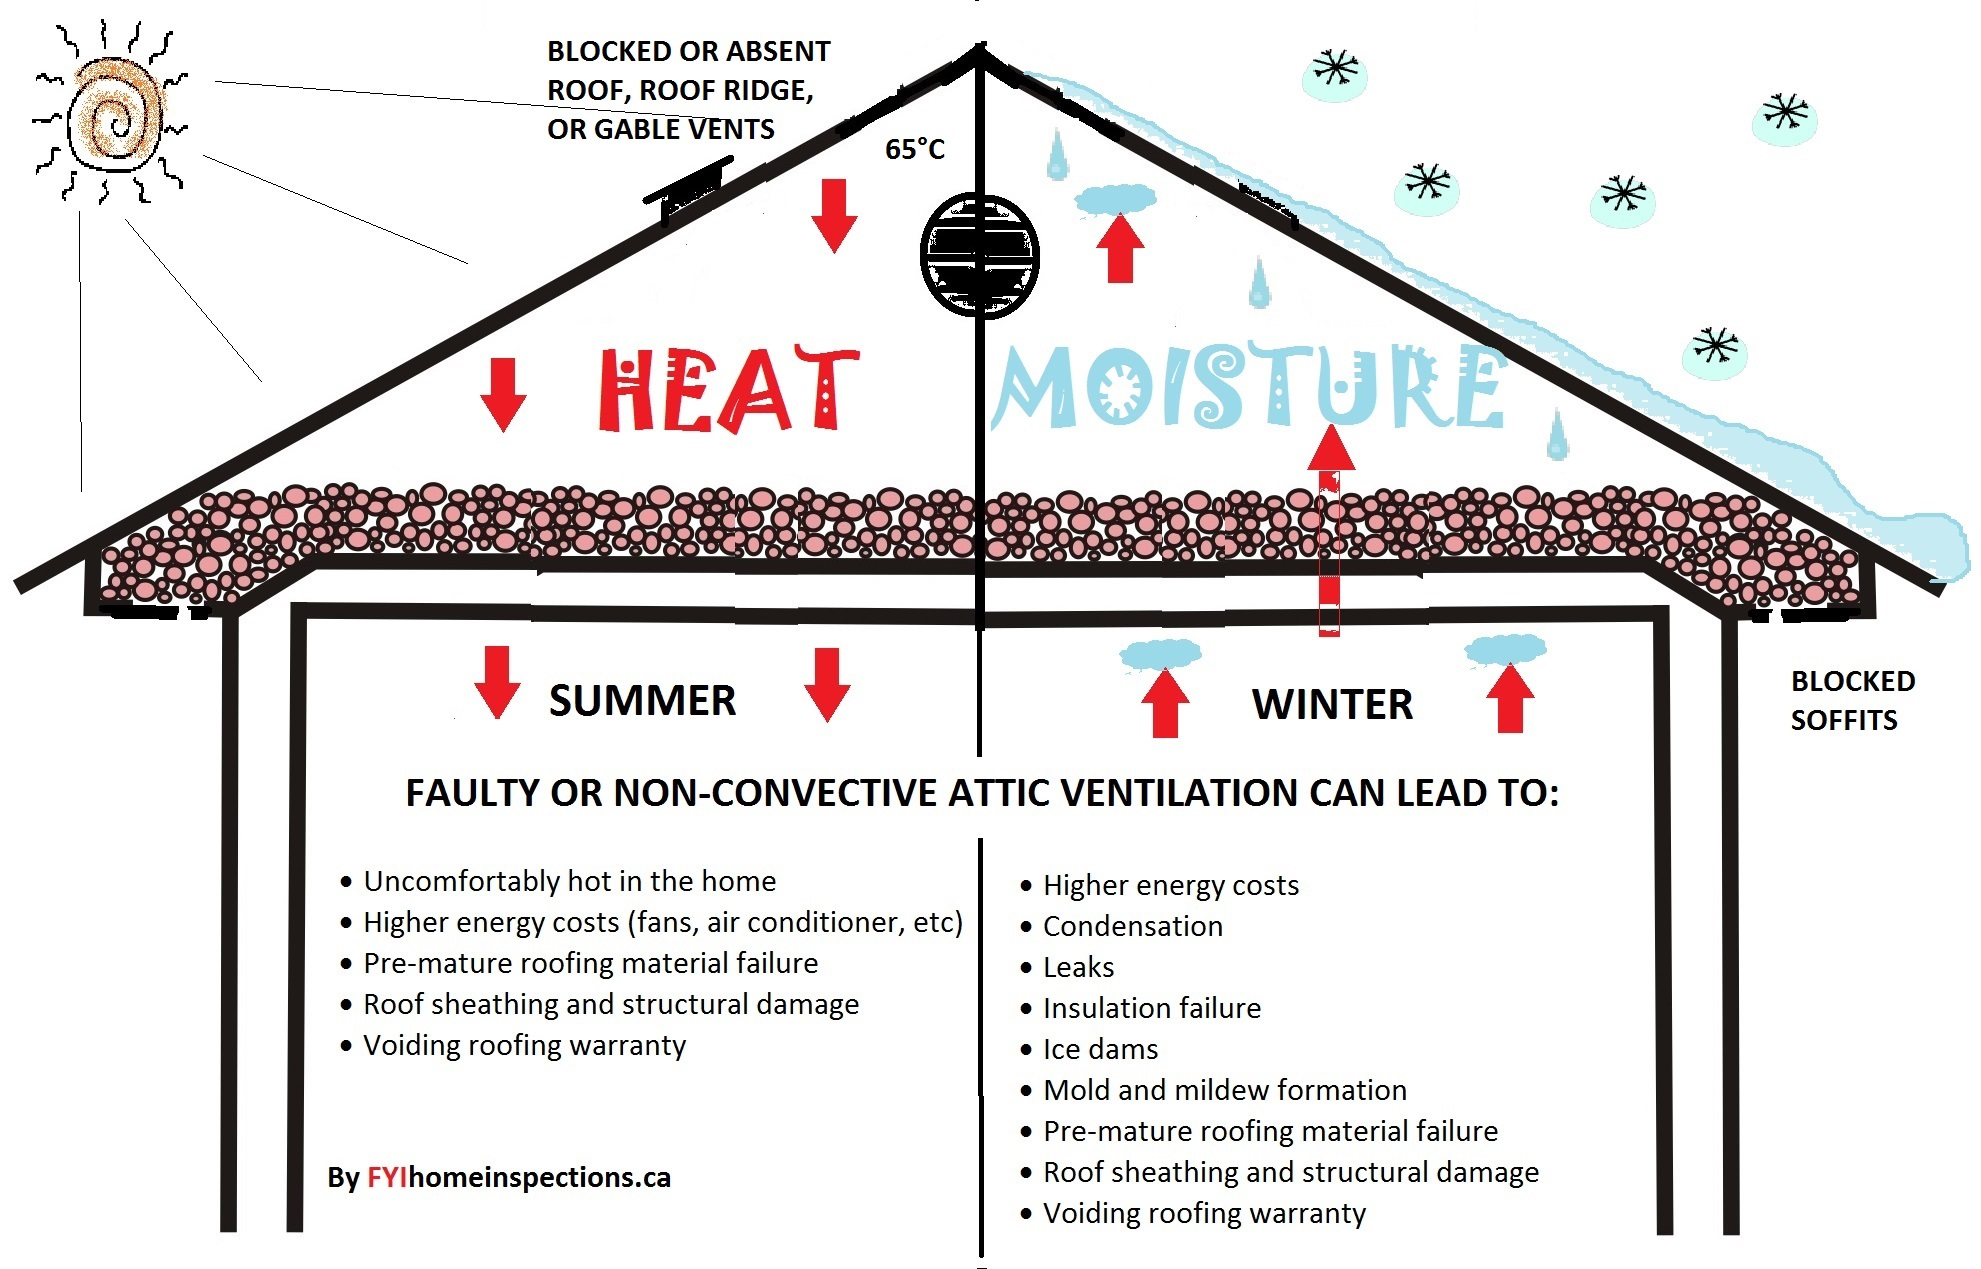 Faulty Attic Ventilation please click image to enlarge. #B6151C